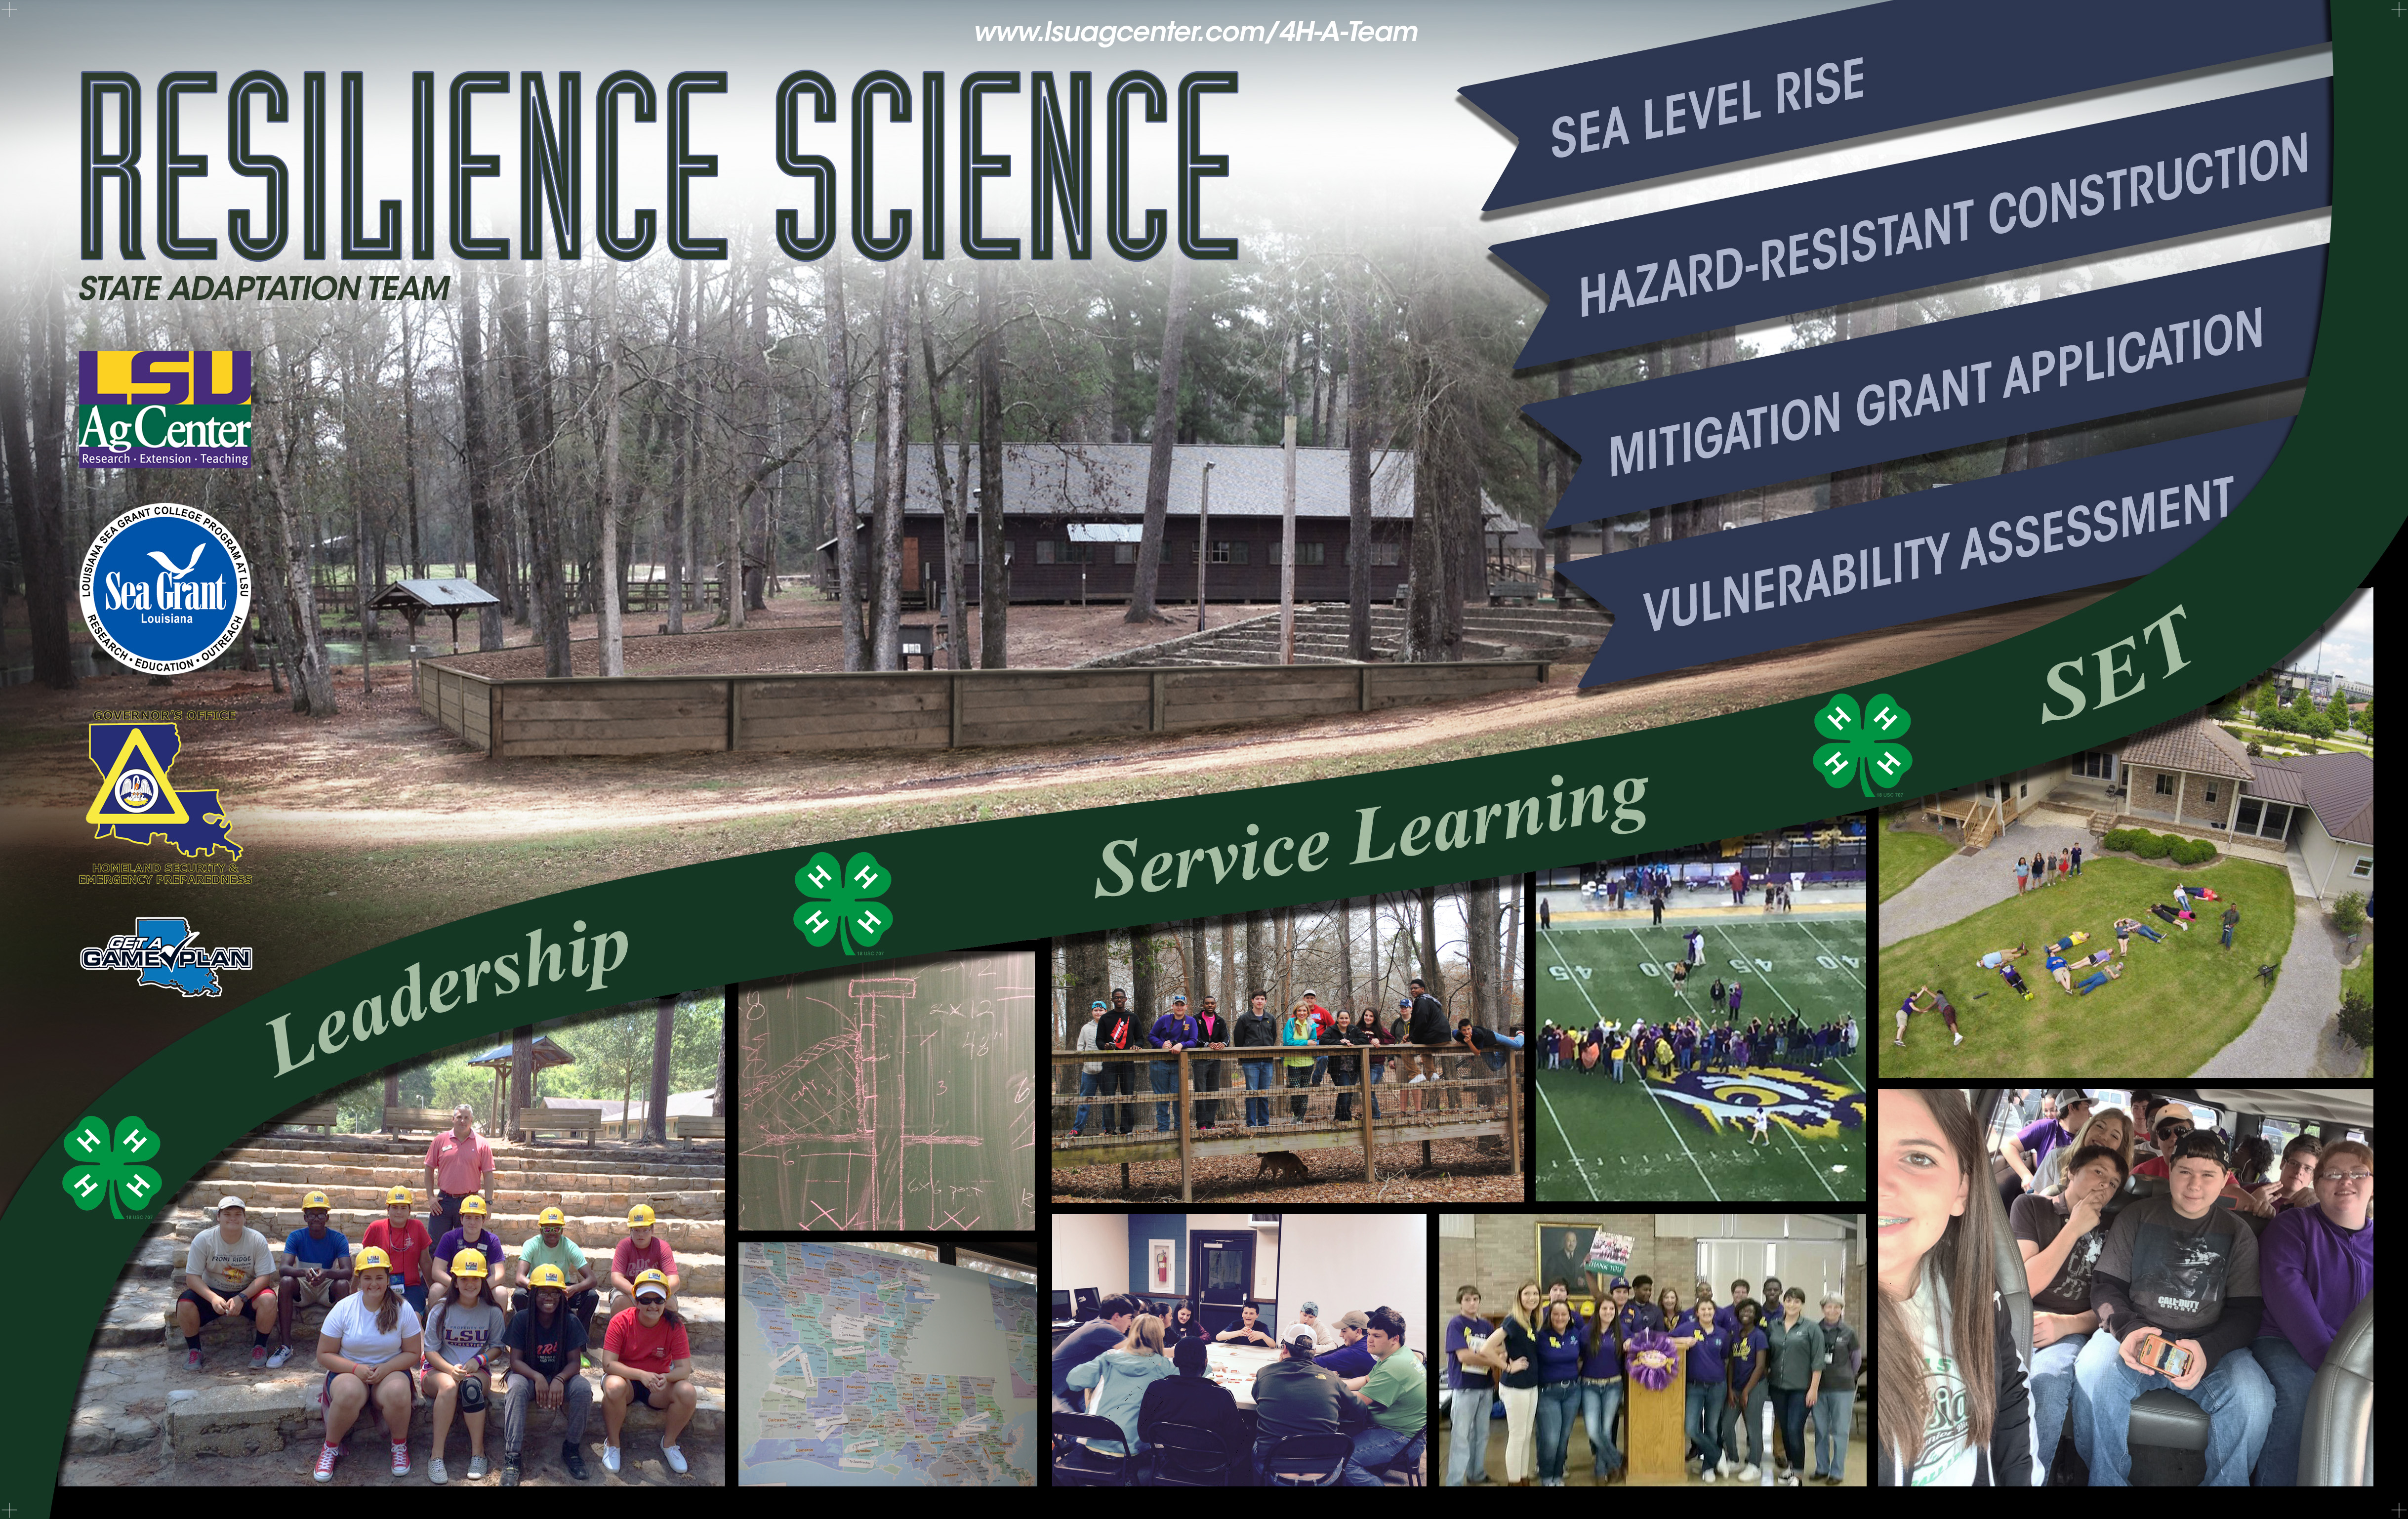 resilience science state team poster.jpg thumbnail